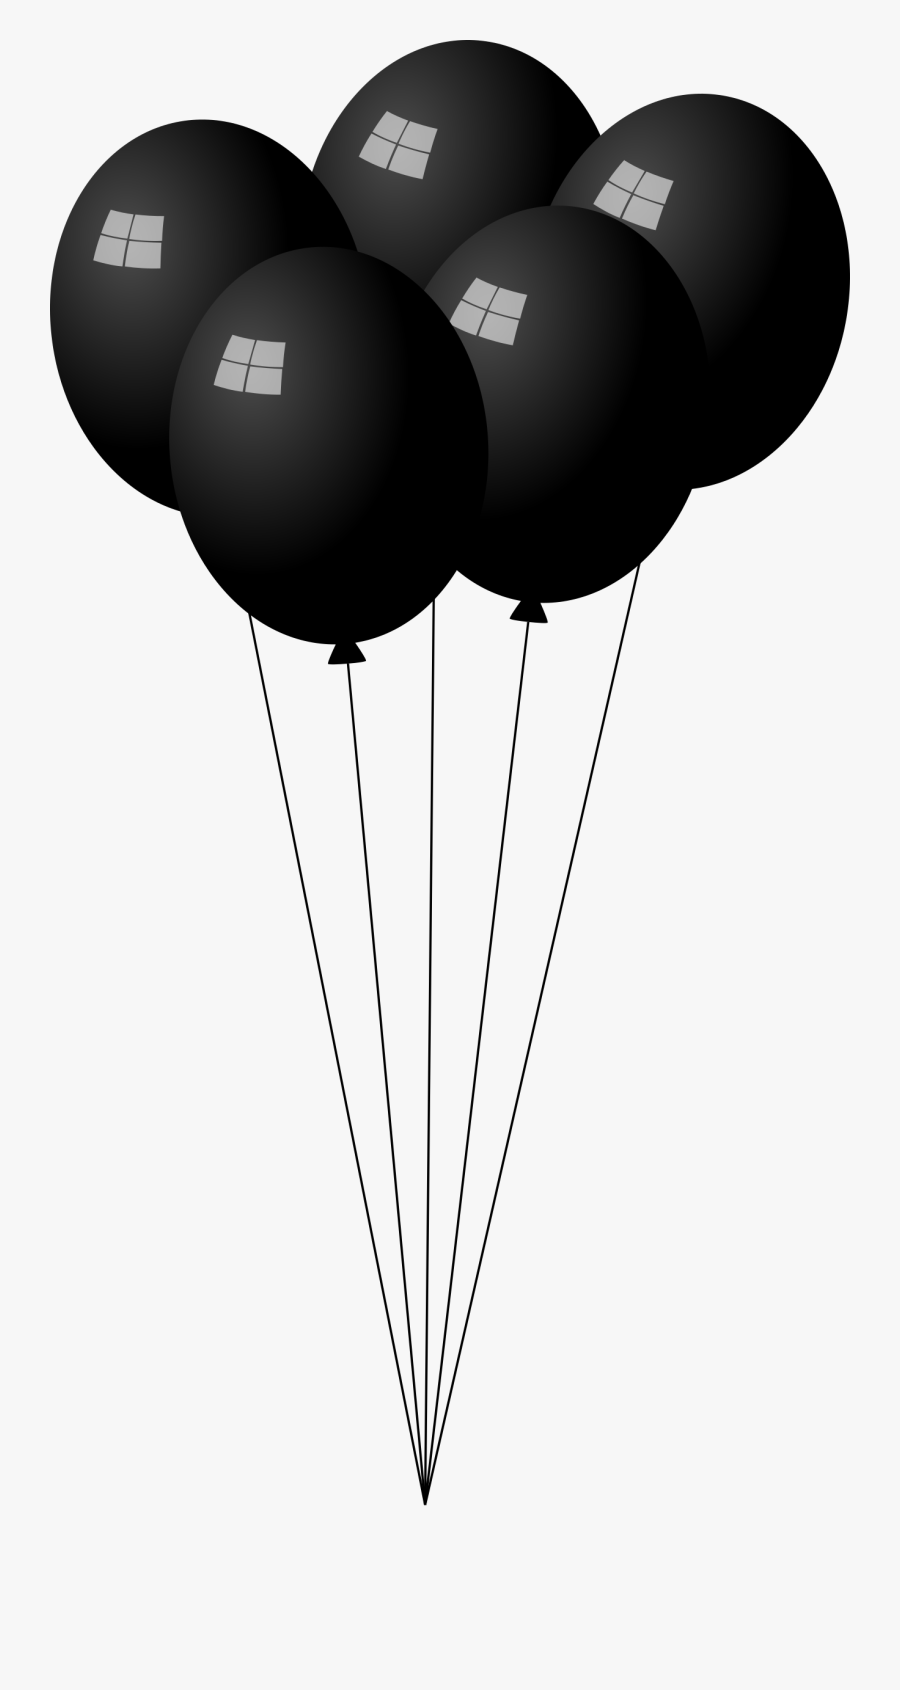 This Free Icons Png Design Of Black Balloons - Transparent Black Balloons Png, Transparent Clipart